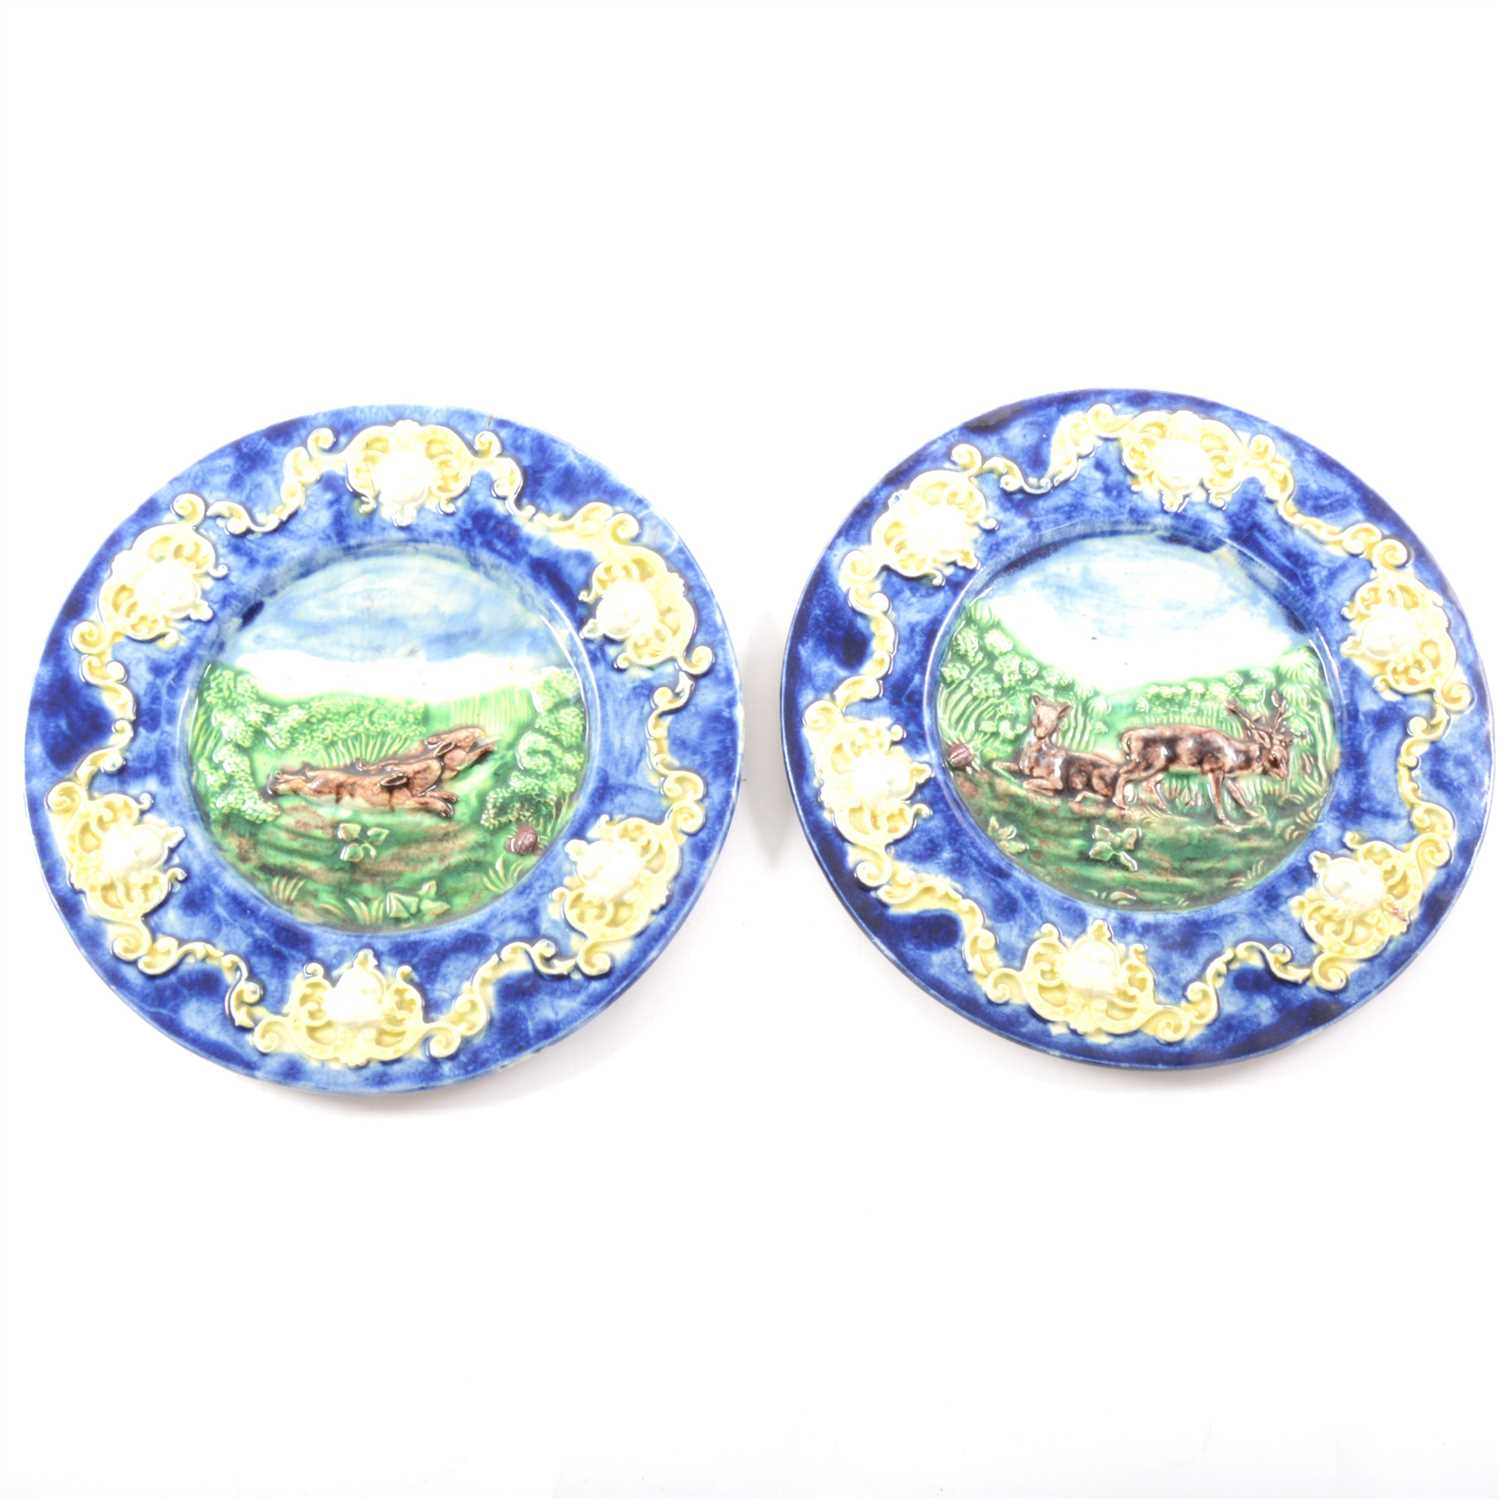 Lot 6-A pair of majolica plates, relief decorated with deer and hares